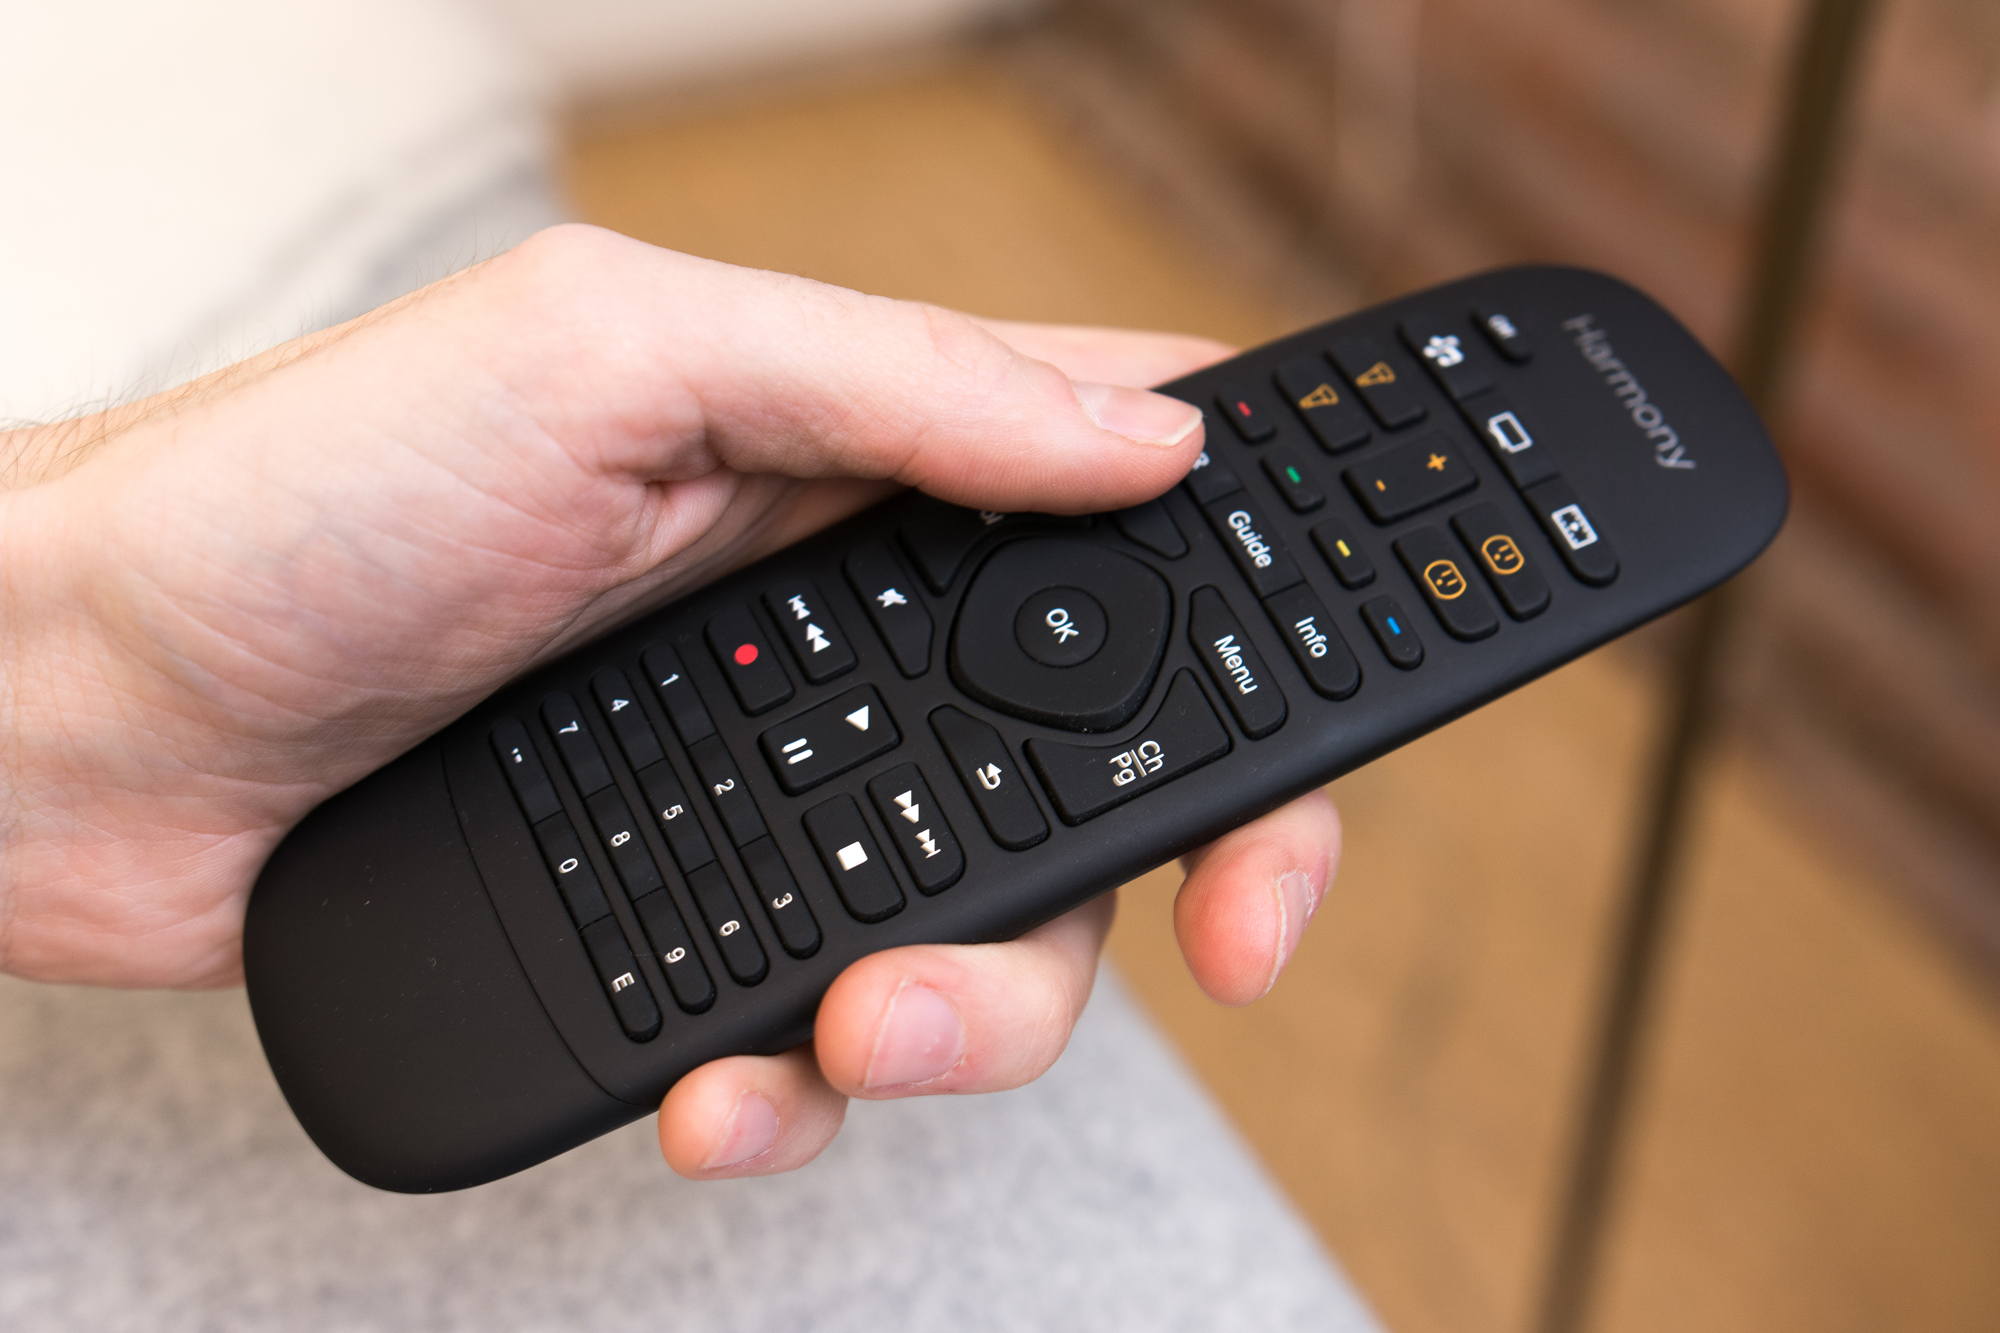 The Harmony Companion remote is smaller, sleeker, and more powerful than the Harmony 650, but gives up the cheaper device's useful display and ...